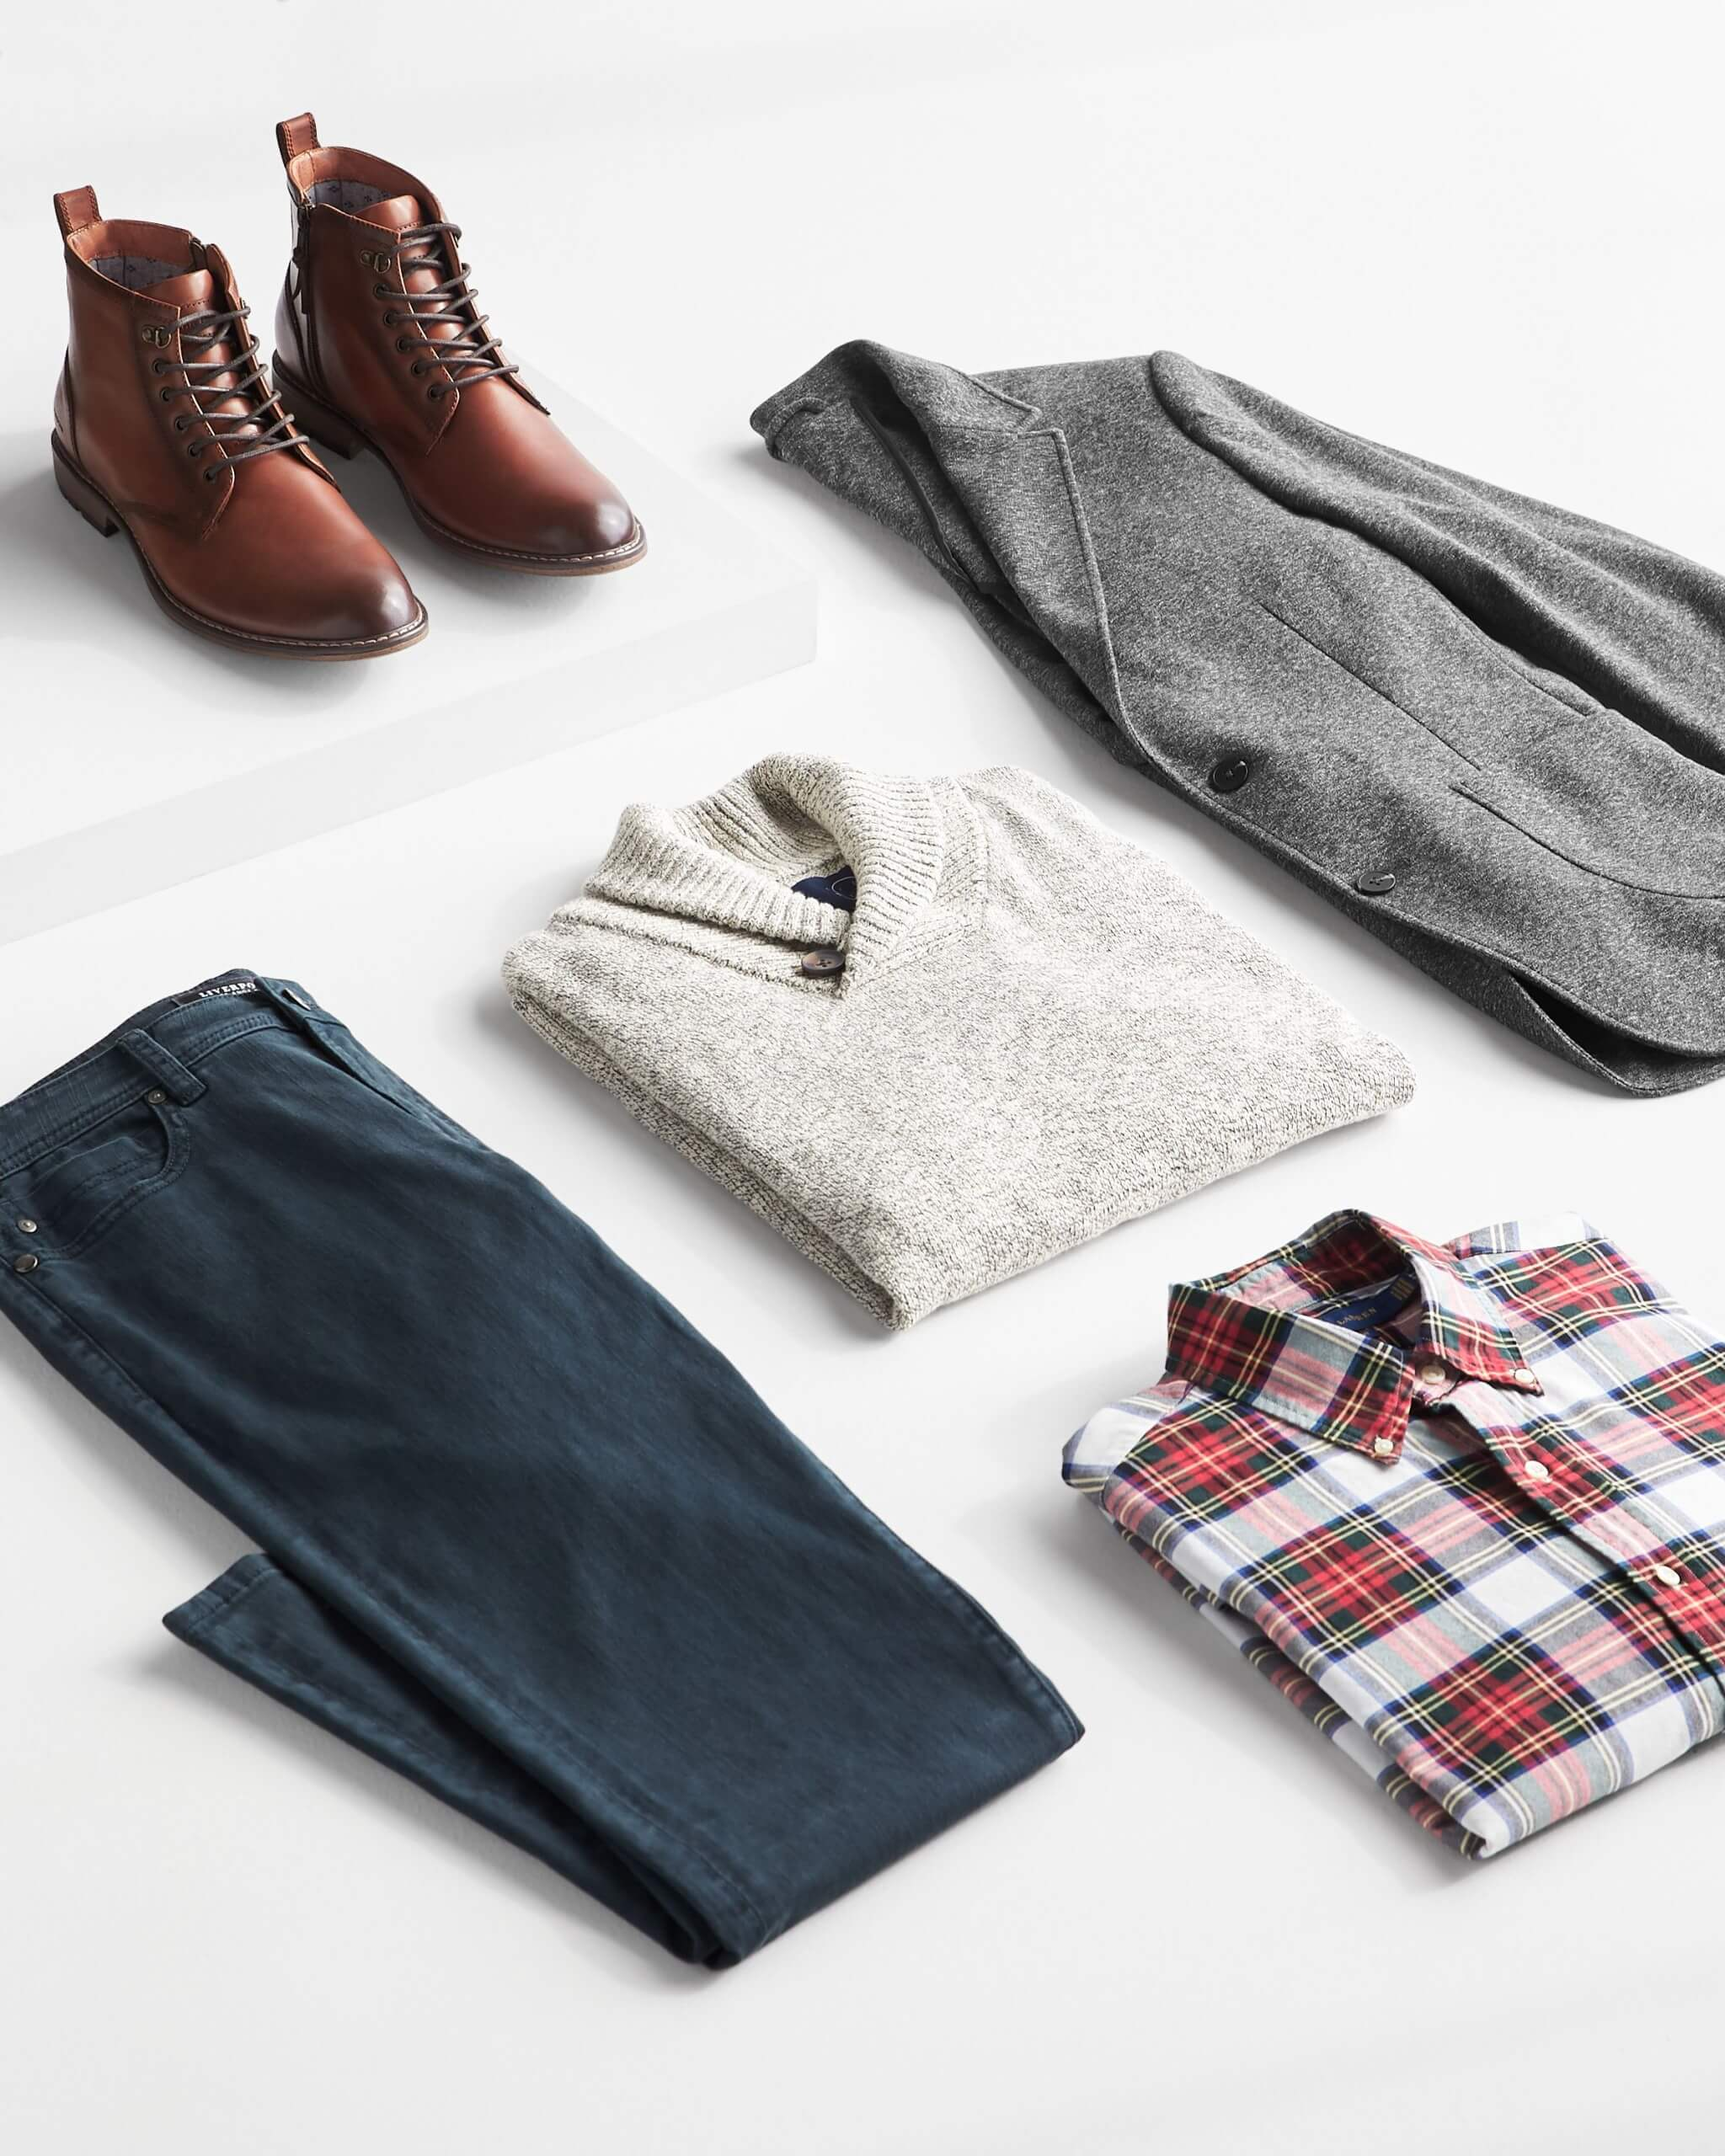 Stitch Fix men's outfit laydown featuring red plaid button-down shirt, grey pullover shawl, grey blazer, dark wash jeans and brown leather boots.